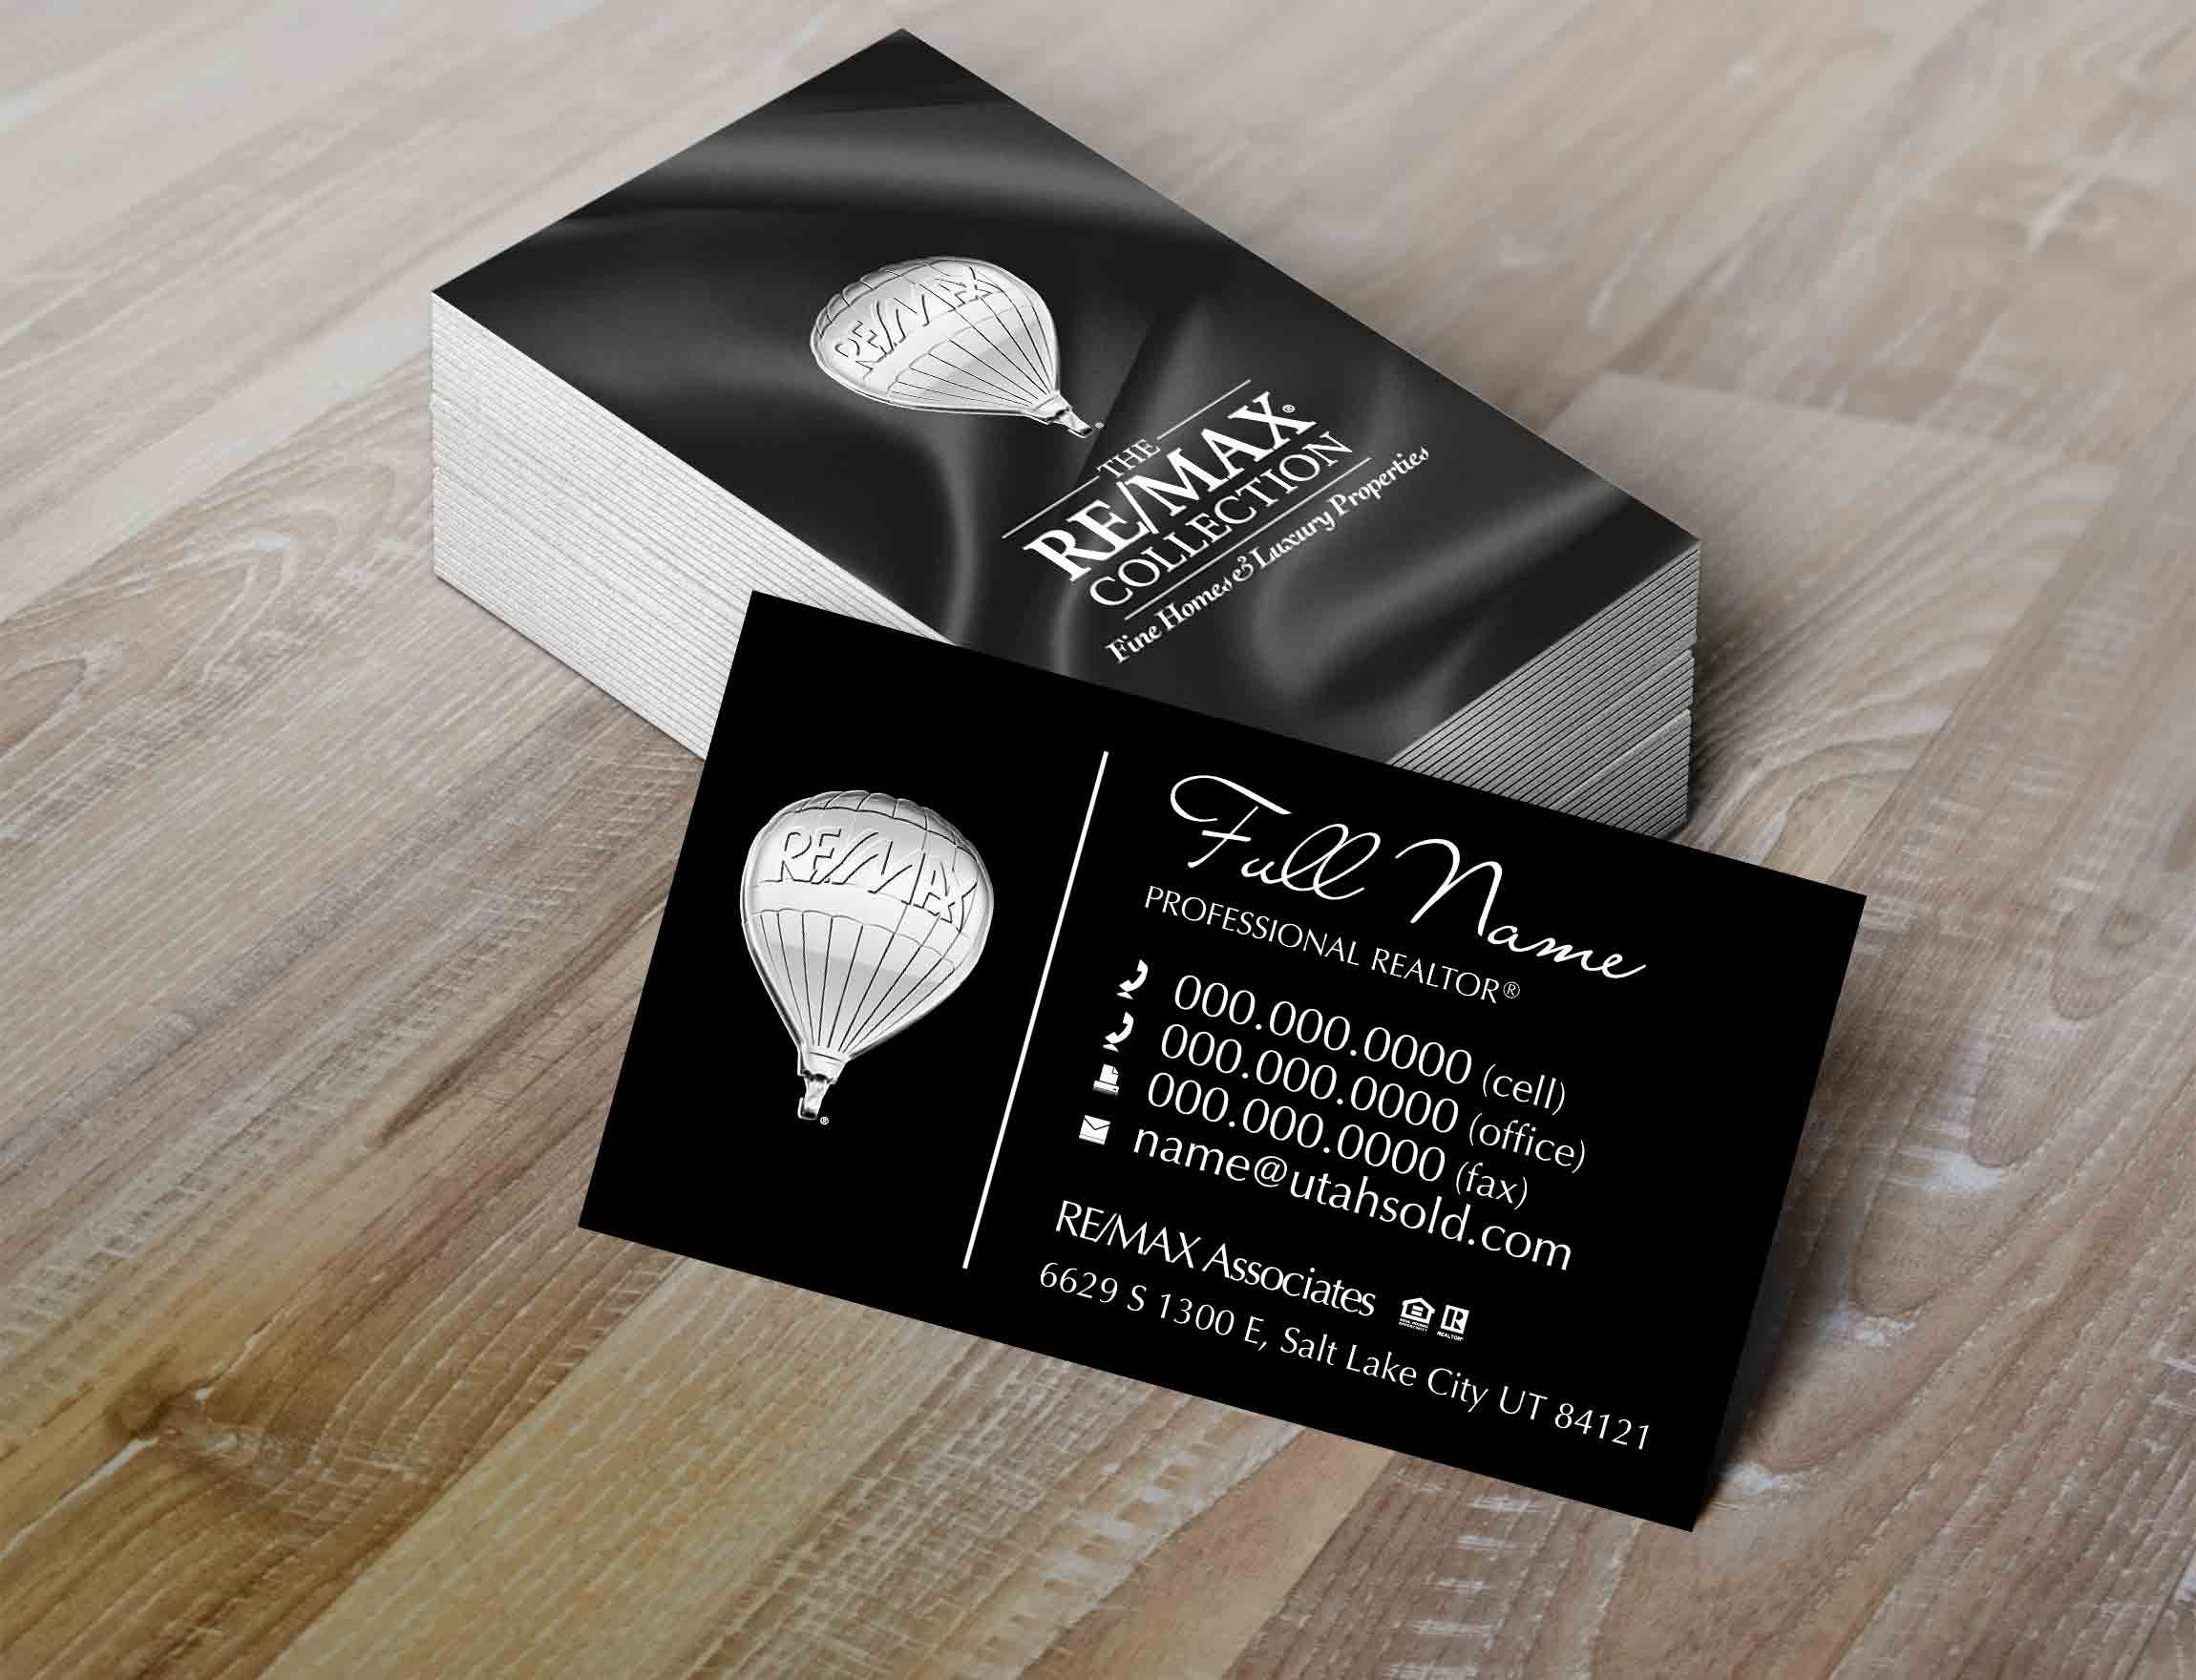 Thin Line Orders | Business Cards | Pinterest | Business cards